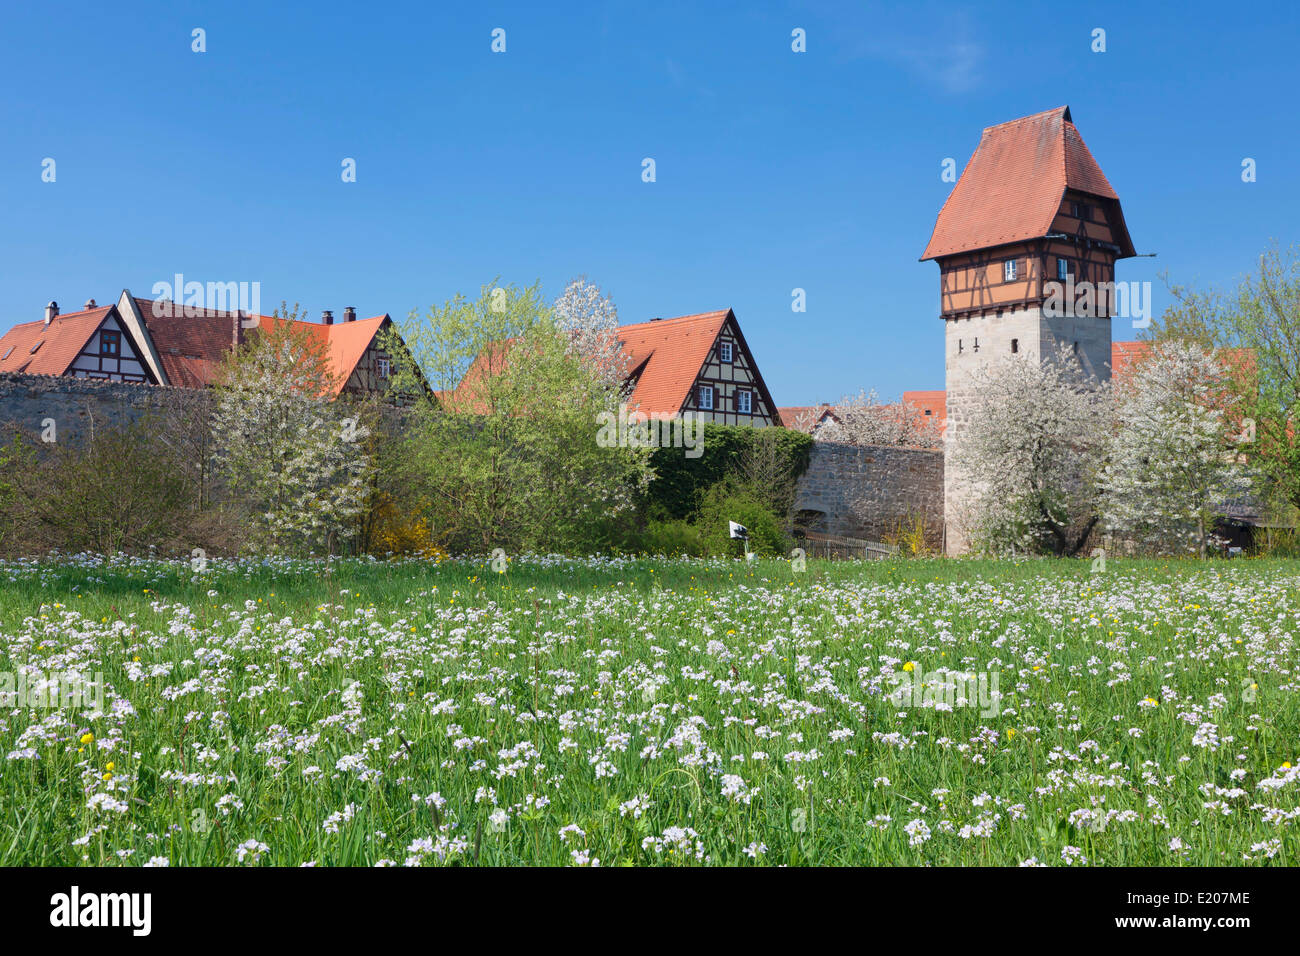 Bäuerlinsturm tower with city walls, Romantic Road, Dinkelsbühl, Middle Franconia, Franconia, Bavaria, - Stock Image